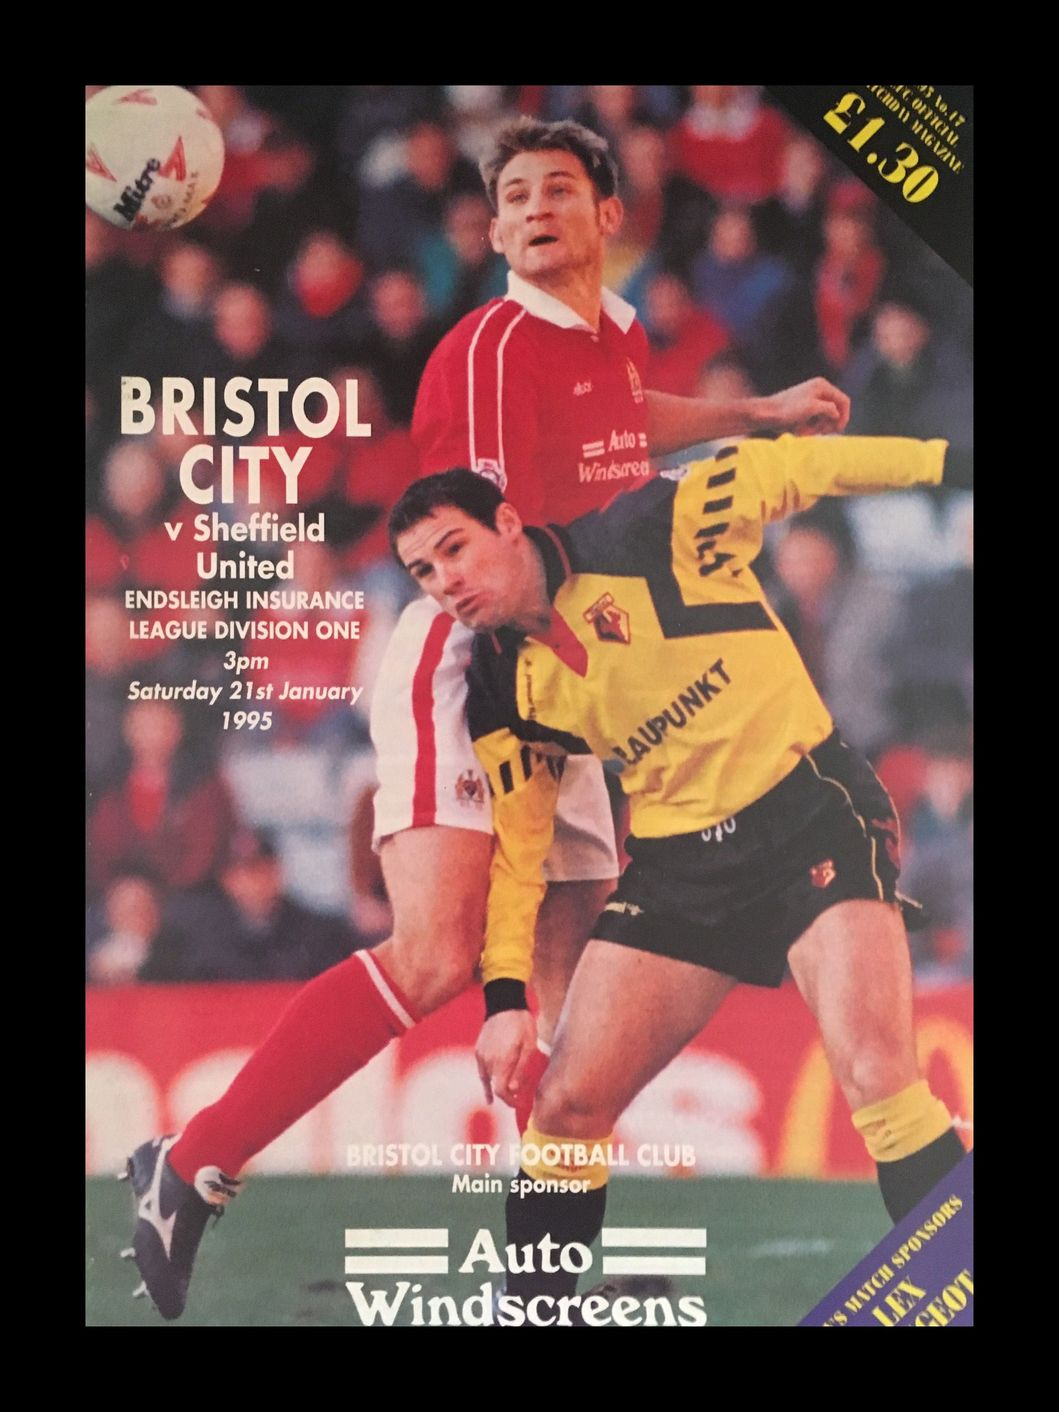 Bristol City v Sheffield United 21-01-1995 Programme